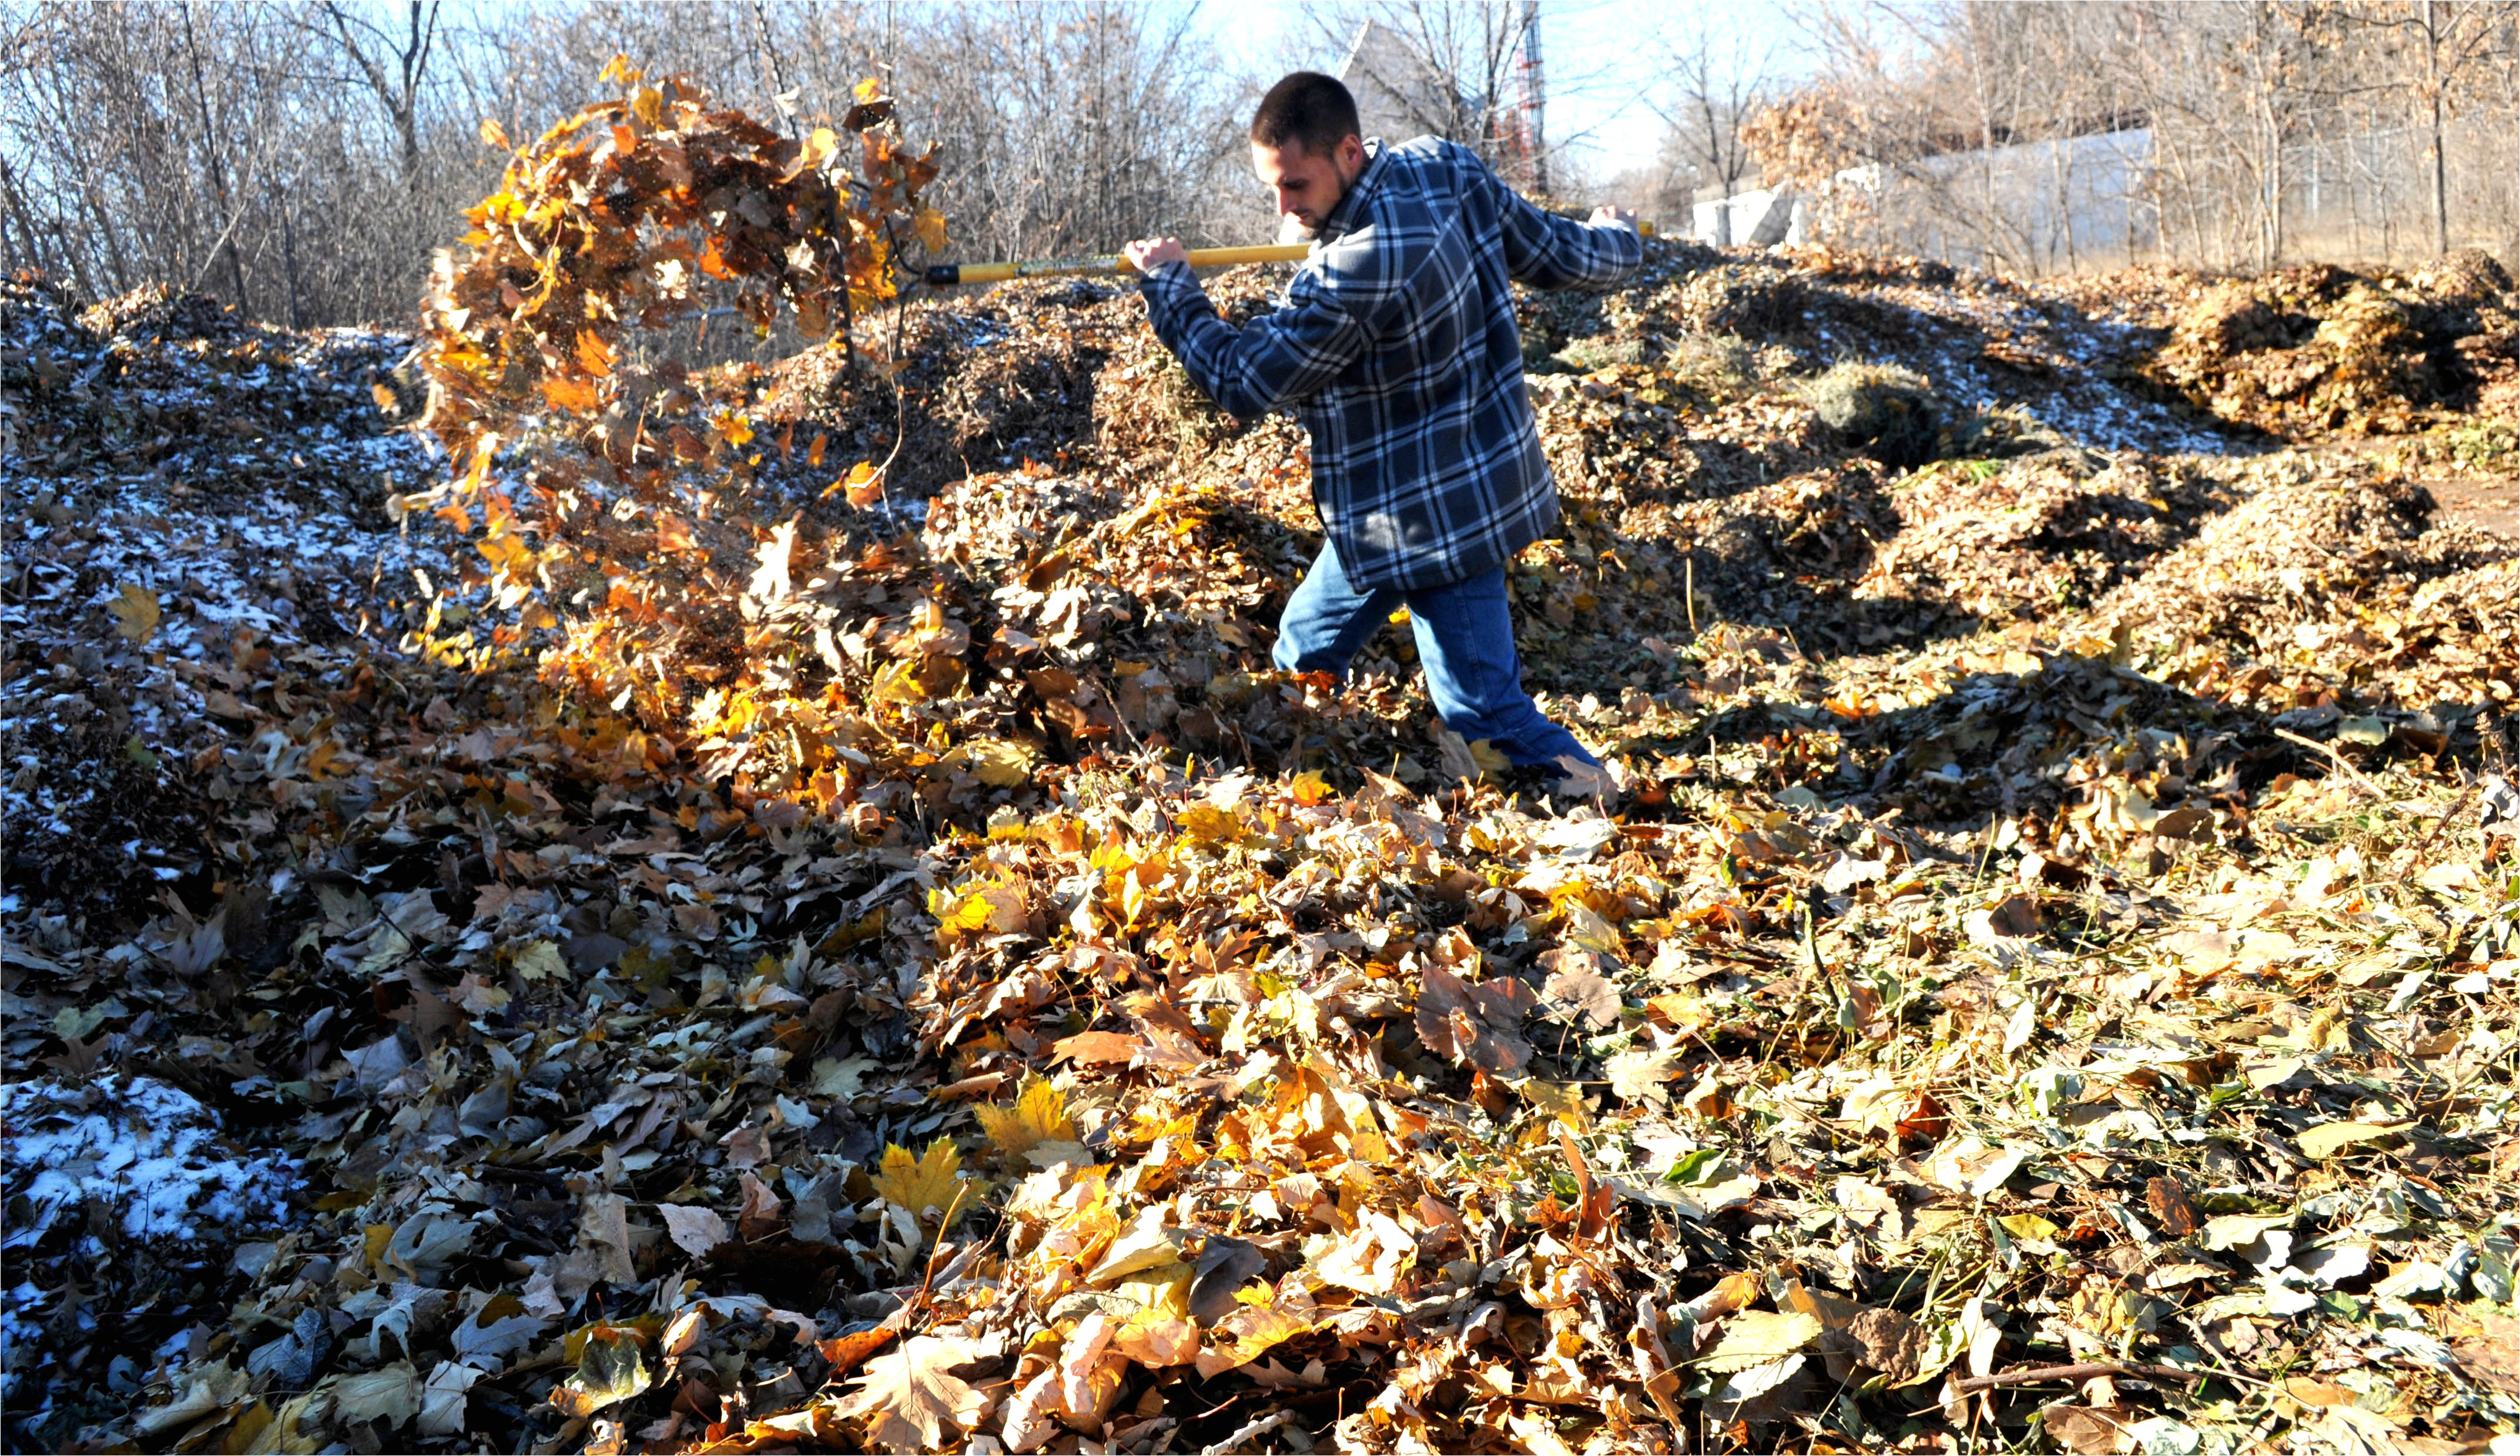 Ramsey County Compost Hours Got Leaves Yard Waste Drop Off Centers In Ramsey County Switch to